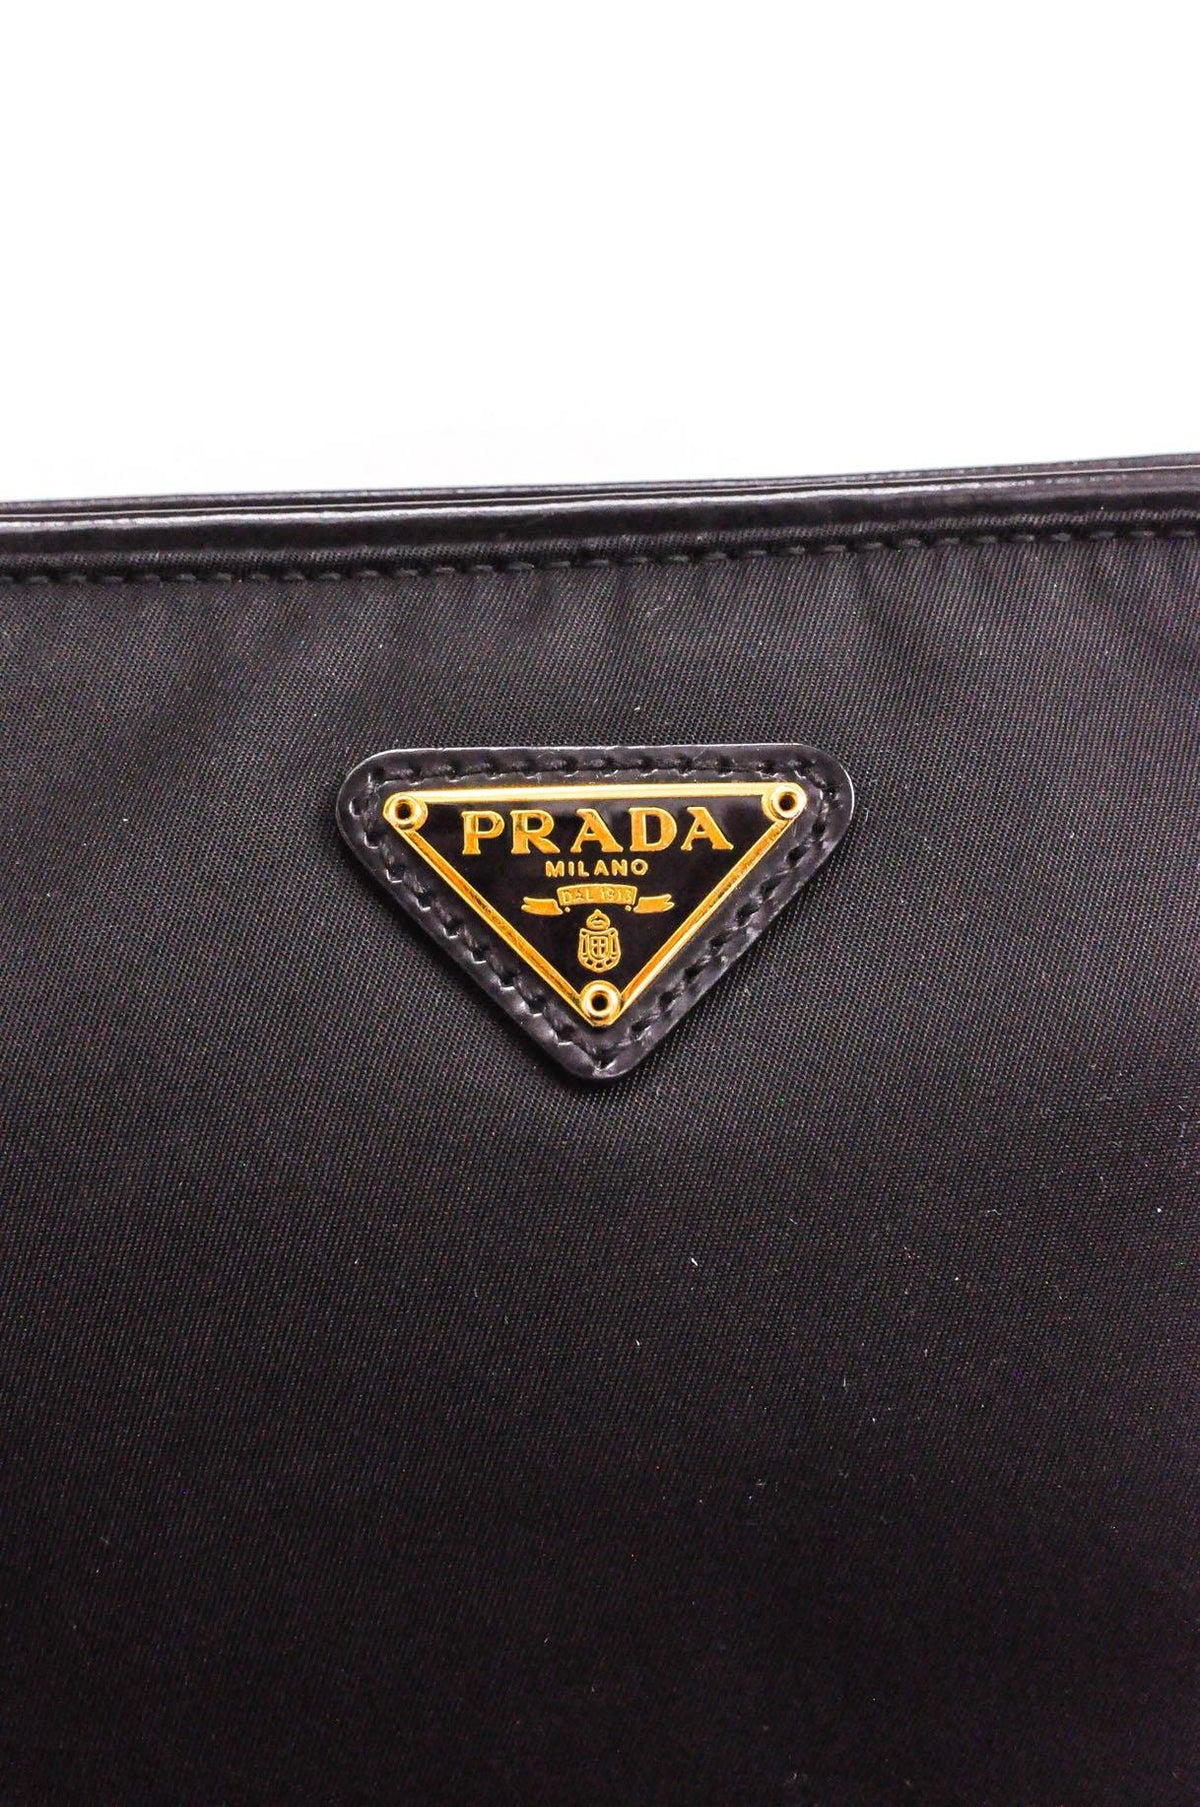 Vintage Prada Shoulder Bag from Sweet and Spark.